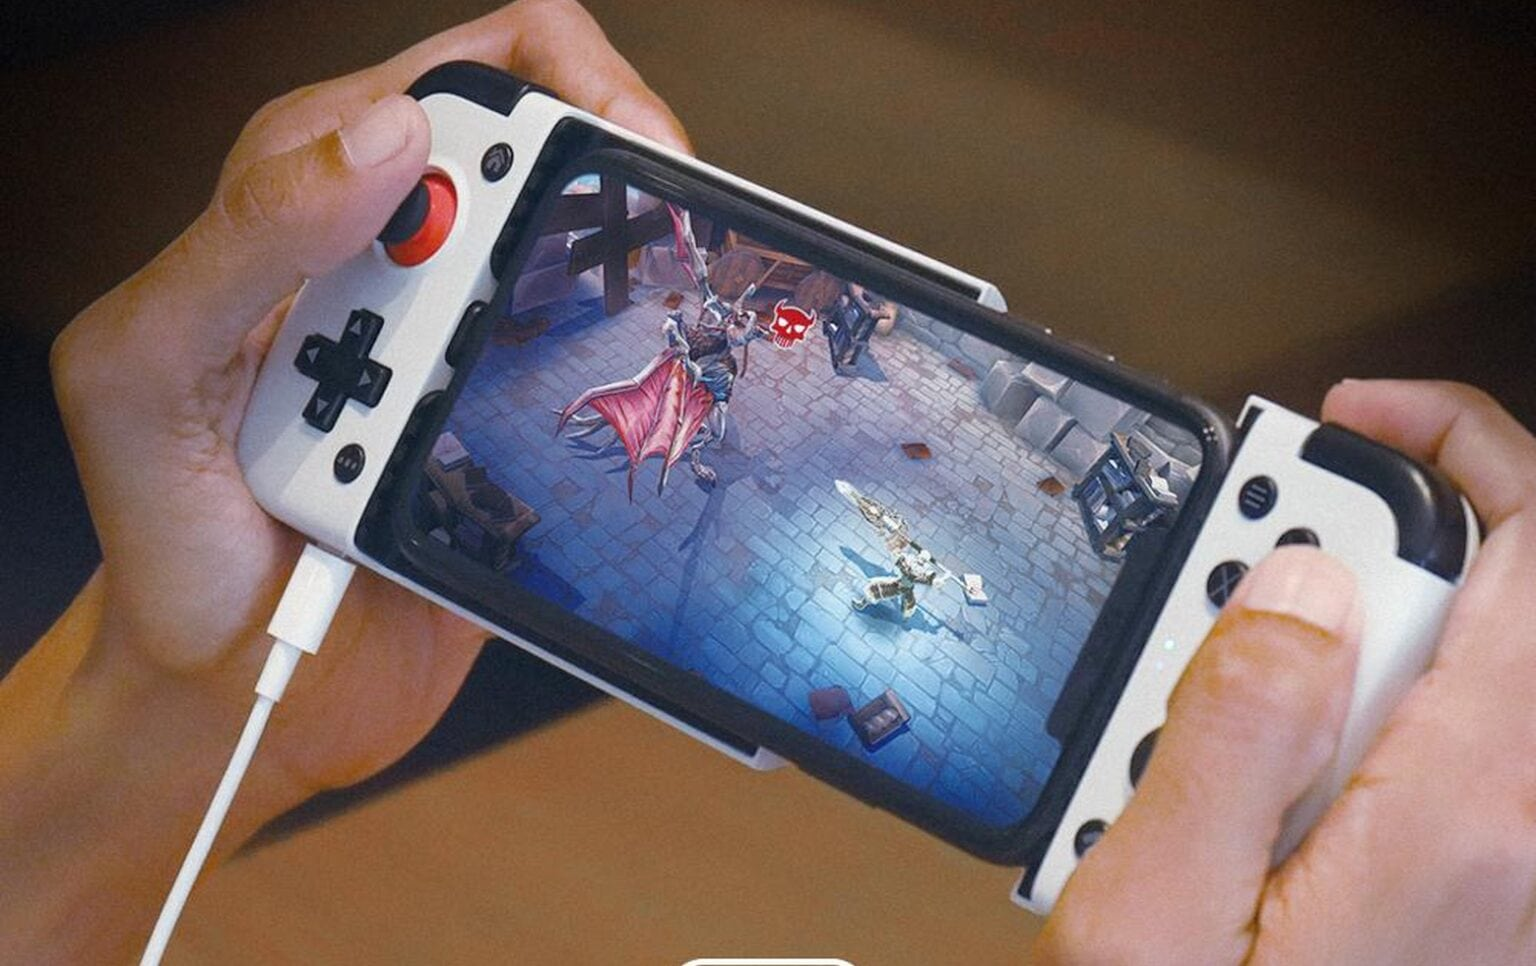 Make your iPhone more fun with GameSir X2 side-by-side game controller with Lightning